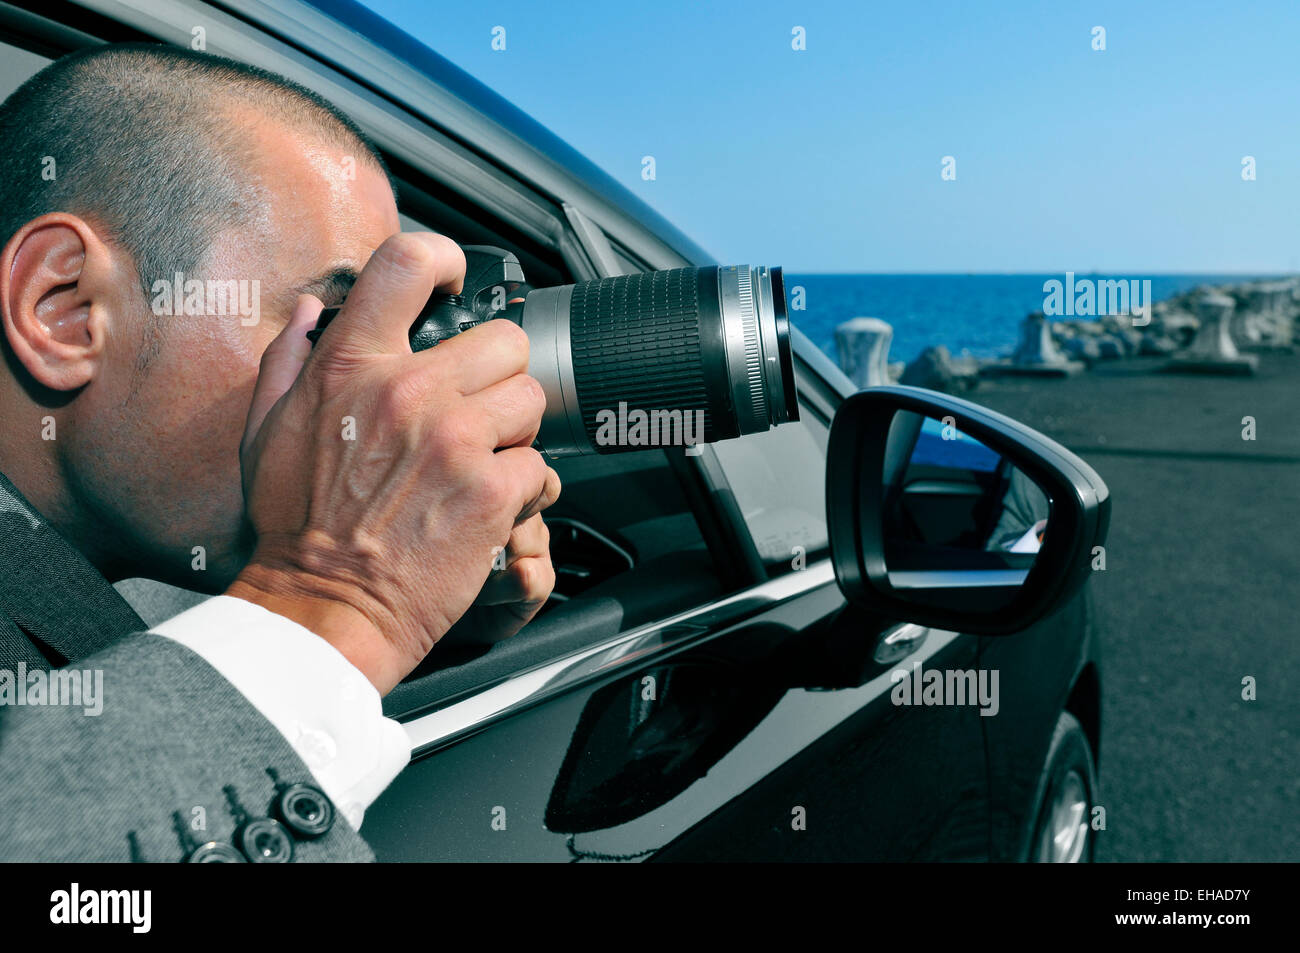 a detective or a paparazzi taking photos from inside a car - Stock Image